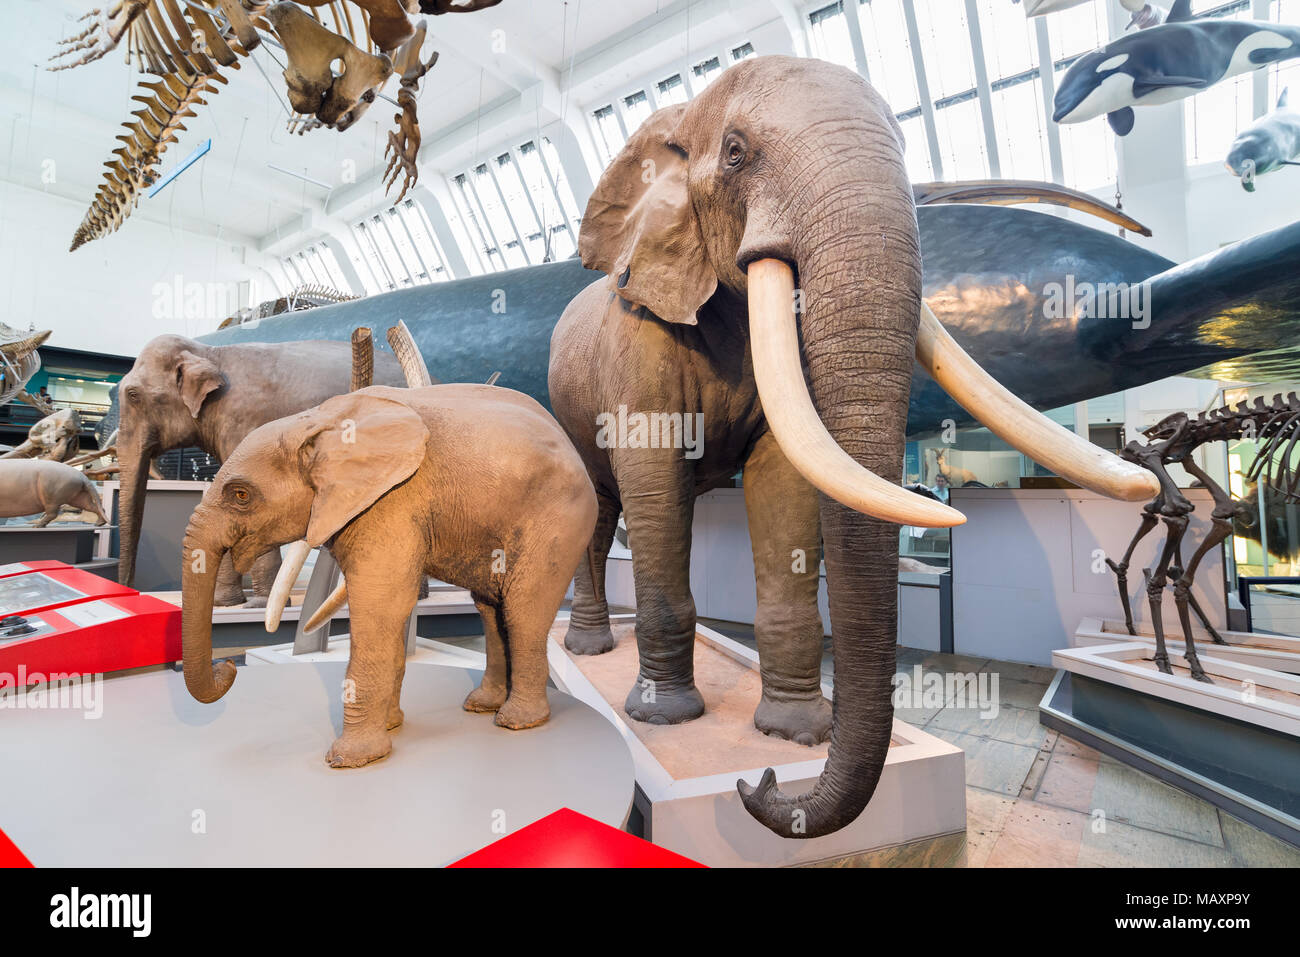 Models of mammals in the Natural History Museum, London, UK - Stock Image